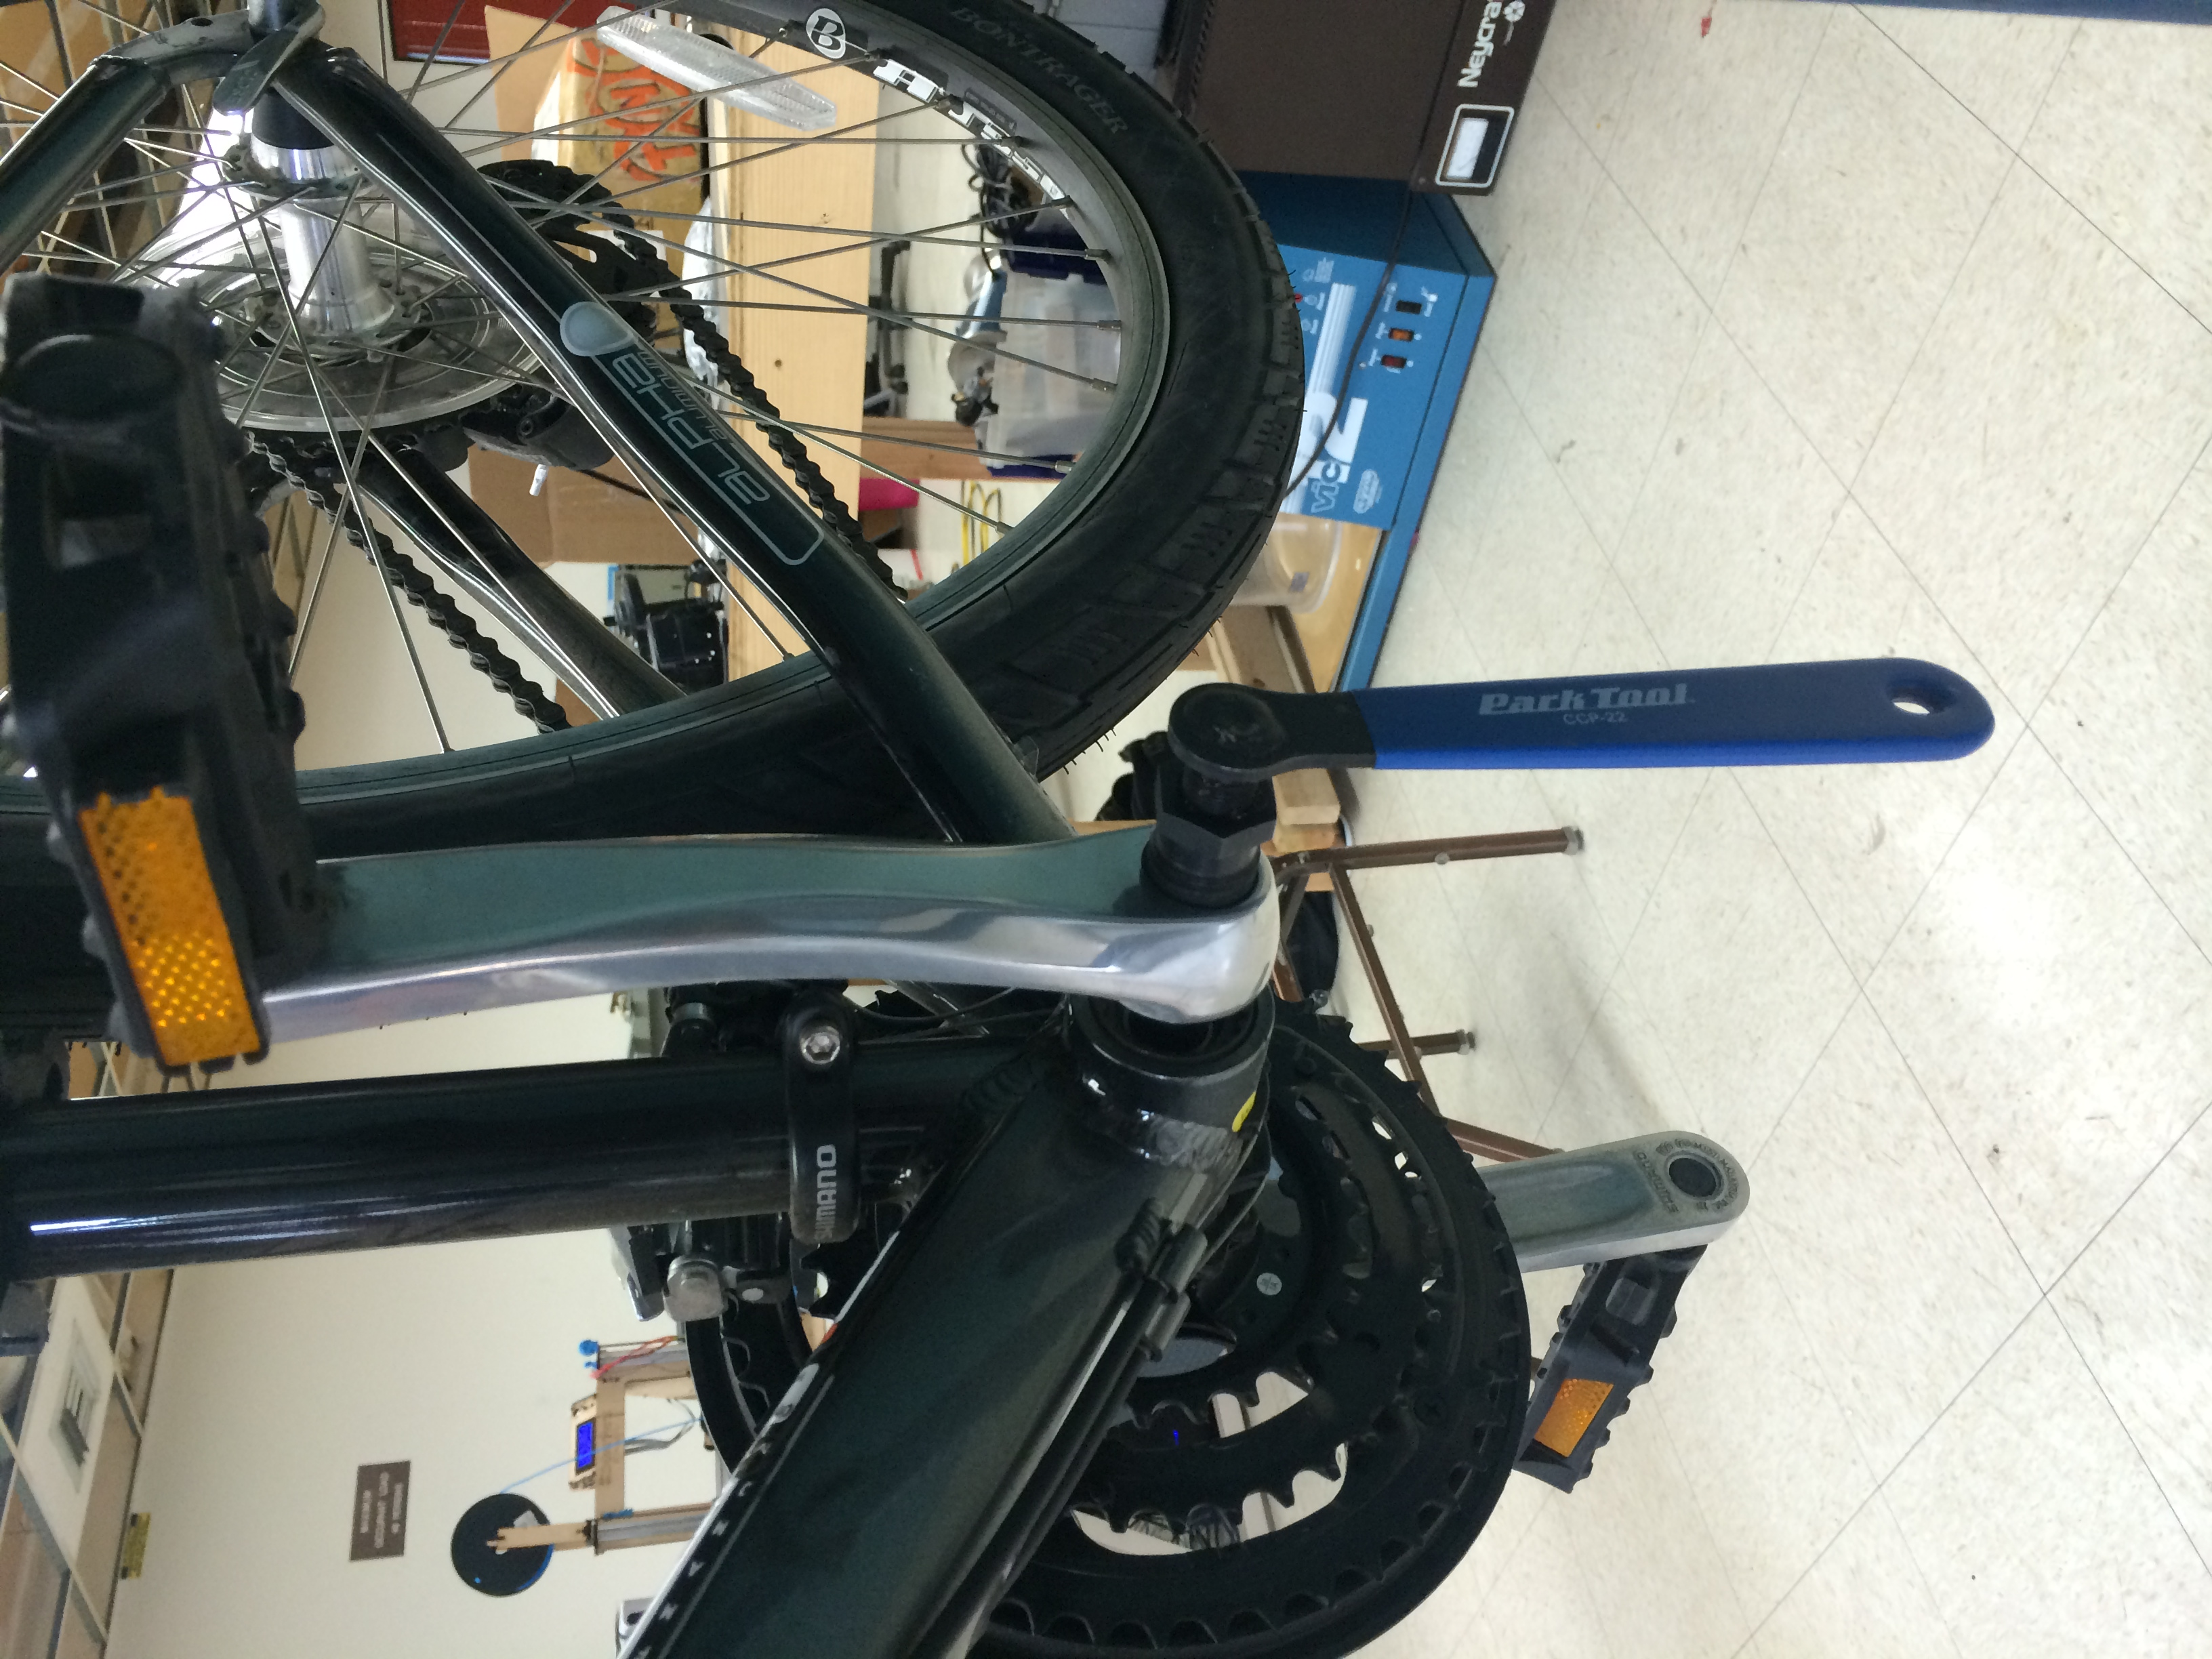 Removing the Crank Arms Part 2